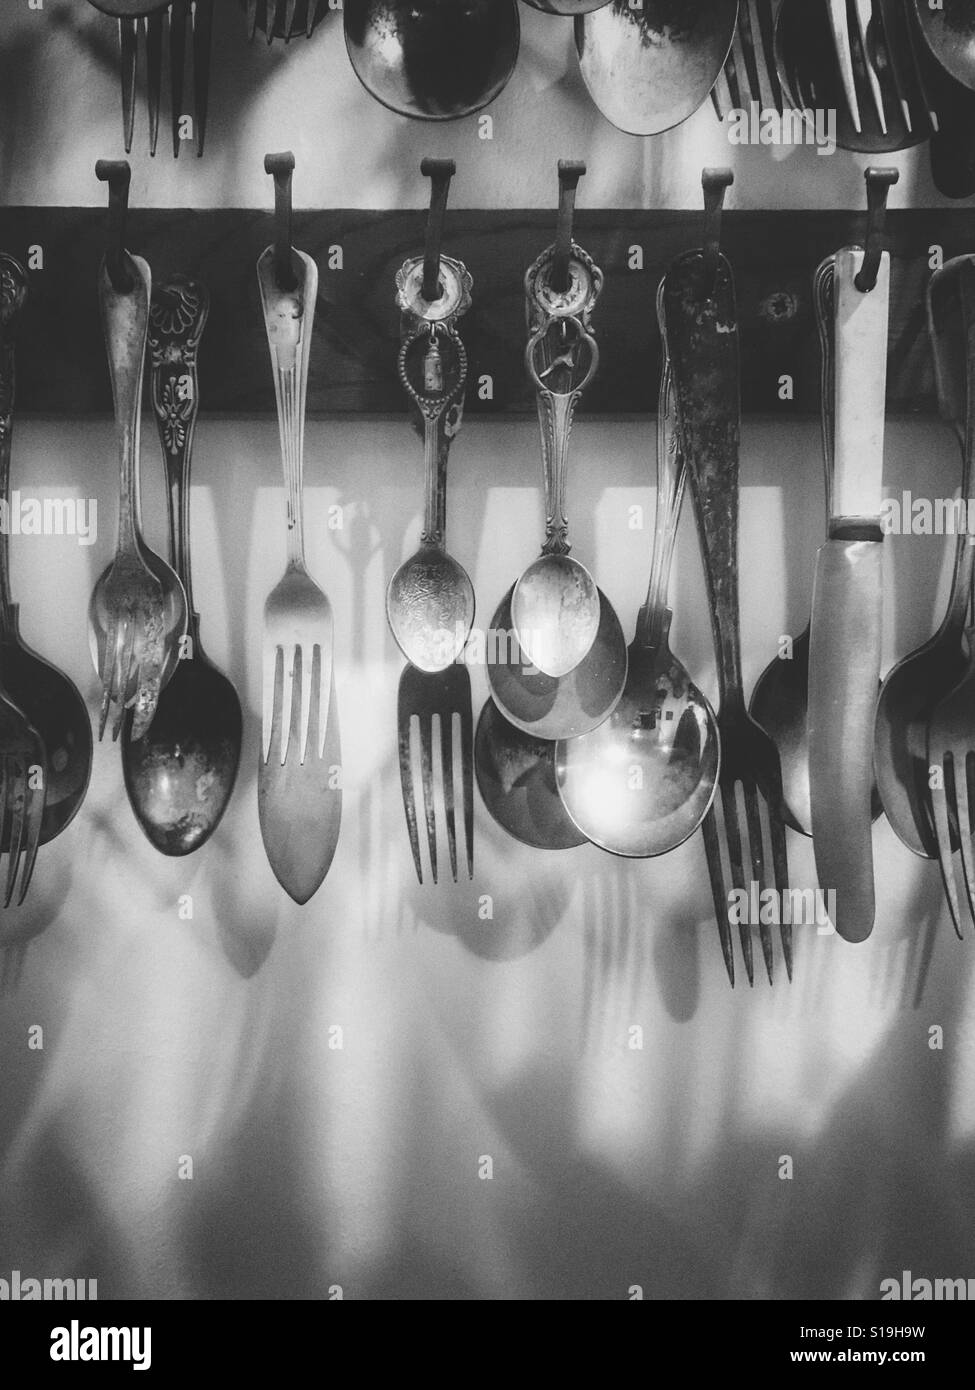 Knives, forks and spoons hanging on a wall - Stock Image